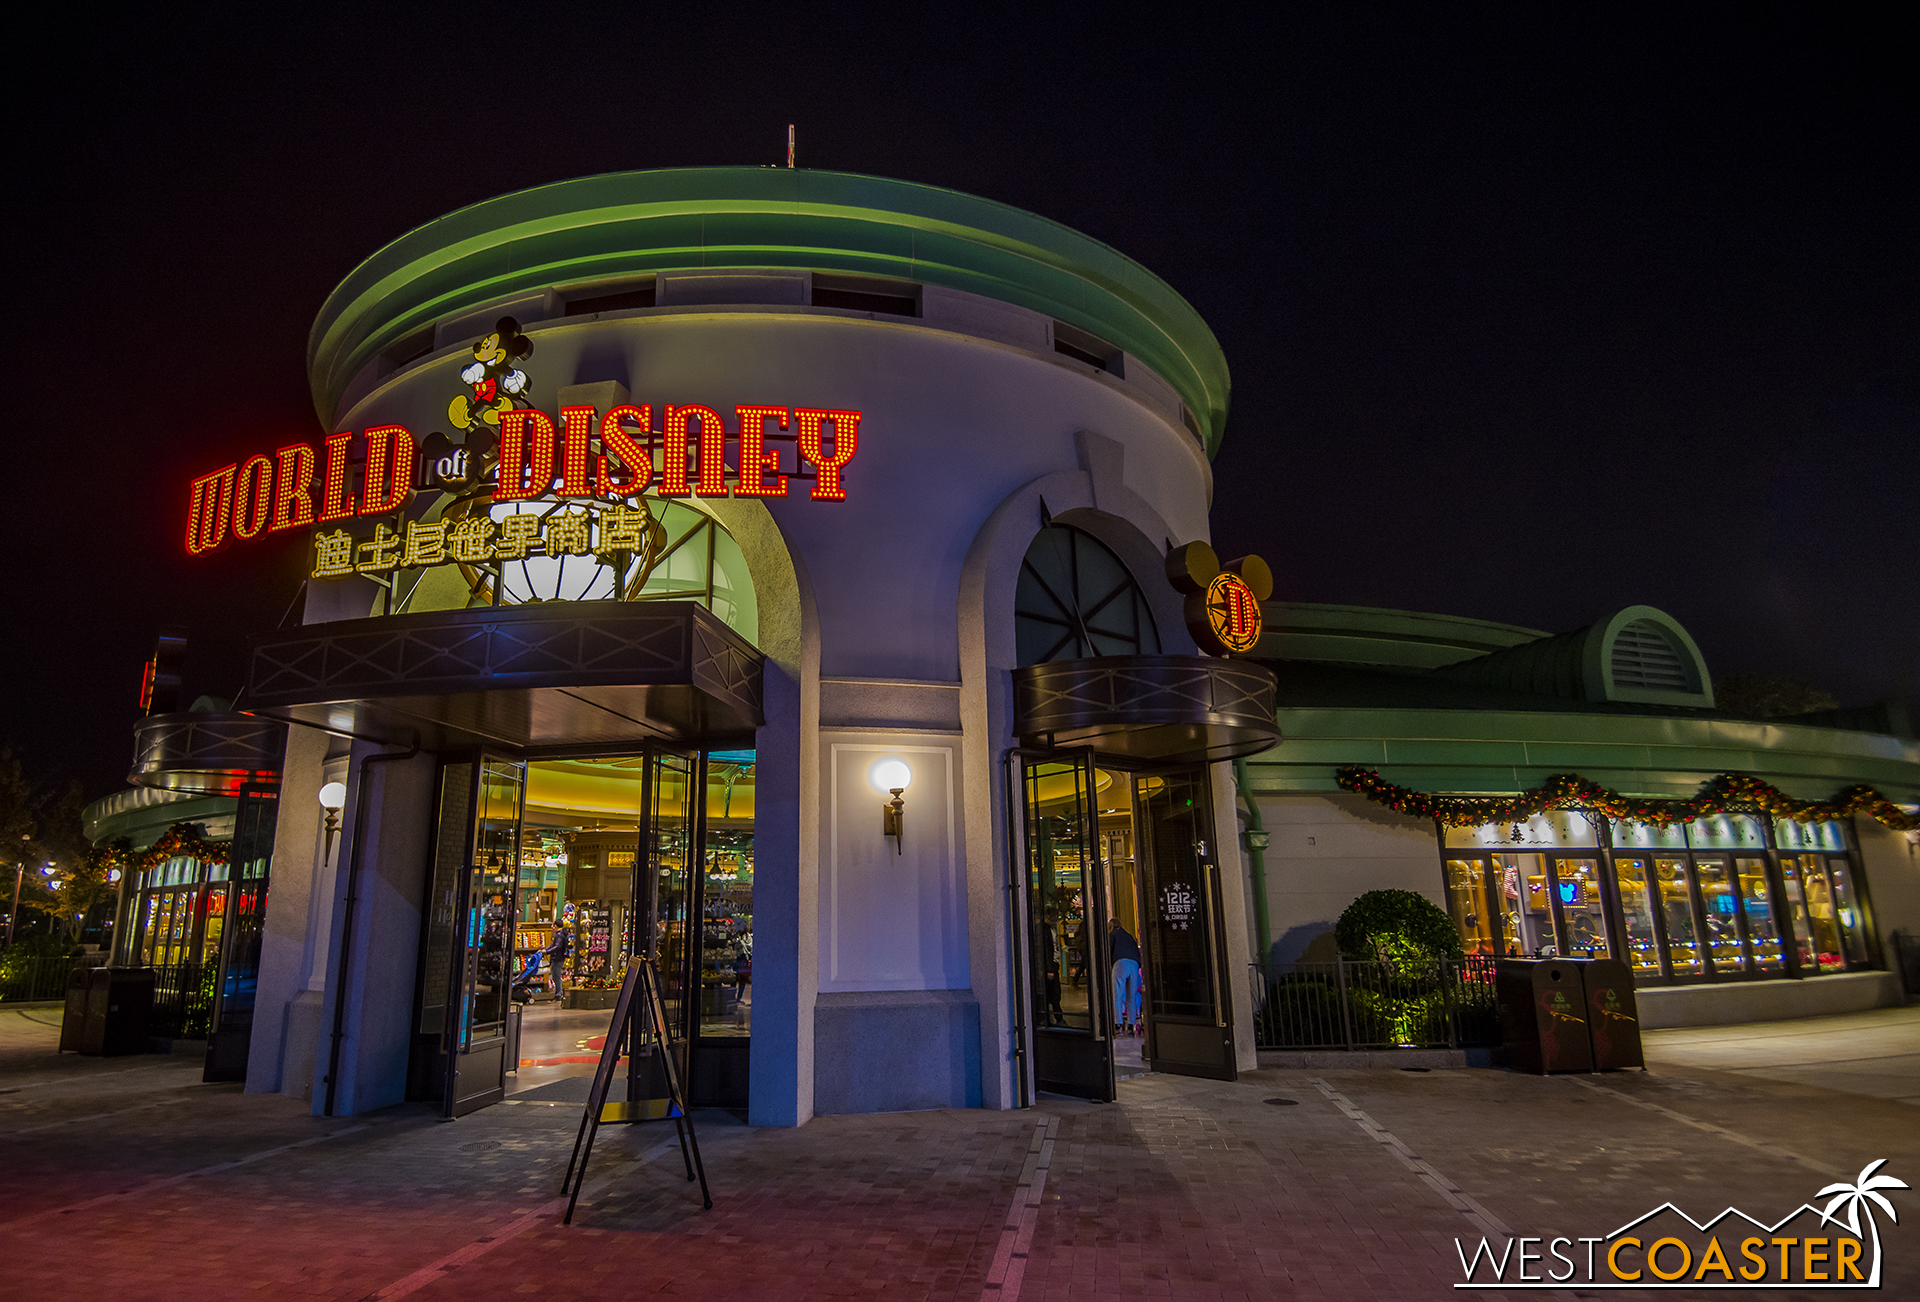 World of Disney anchors the Disneytown complex.